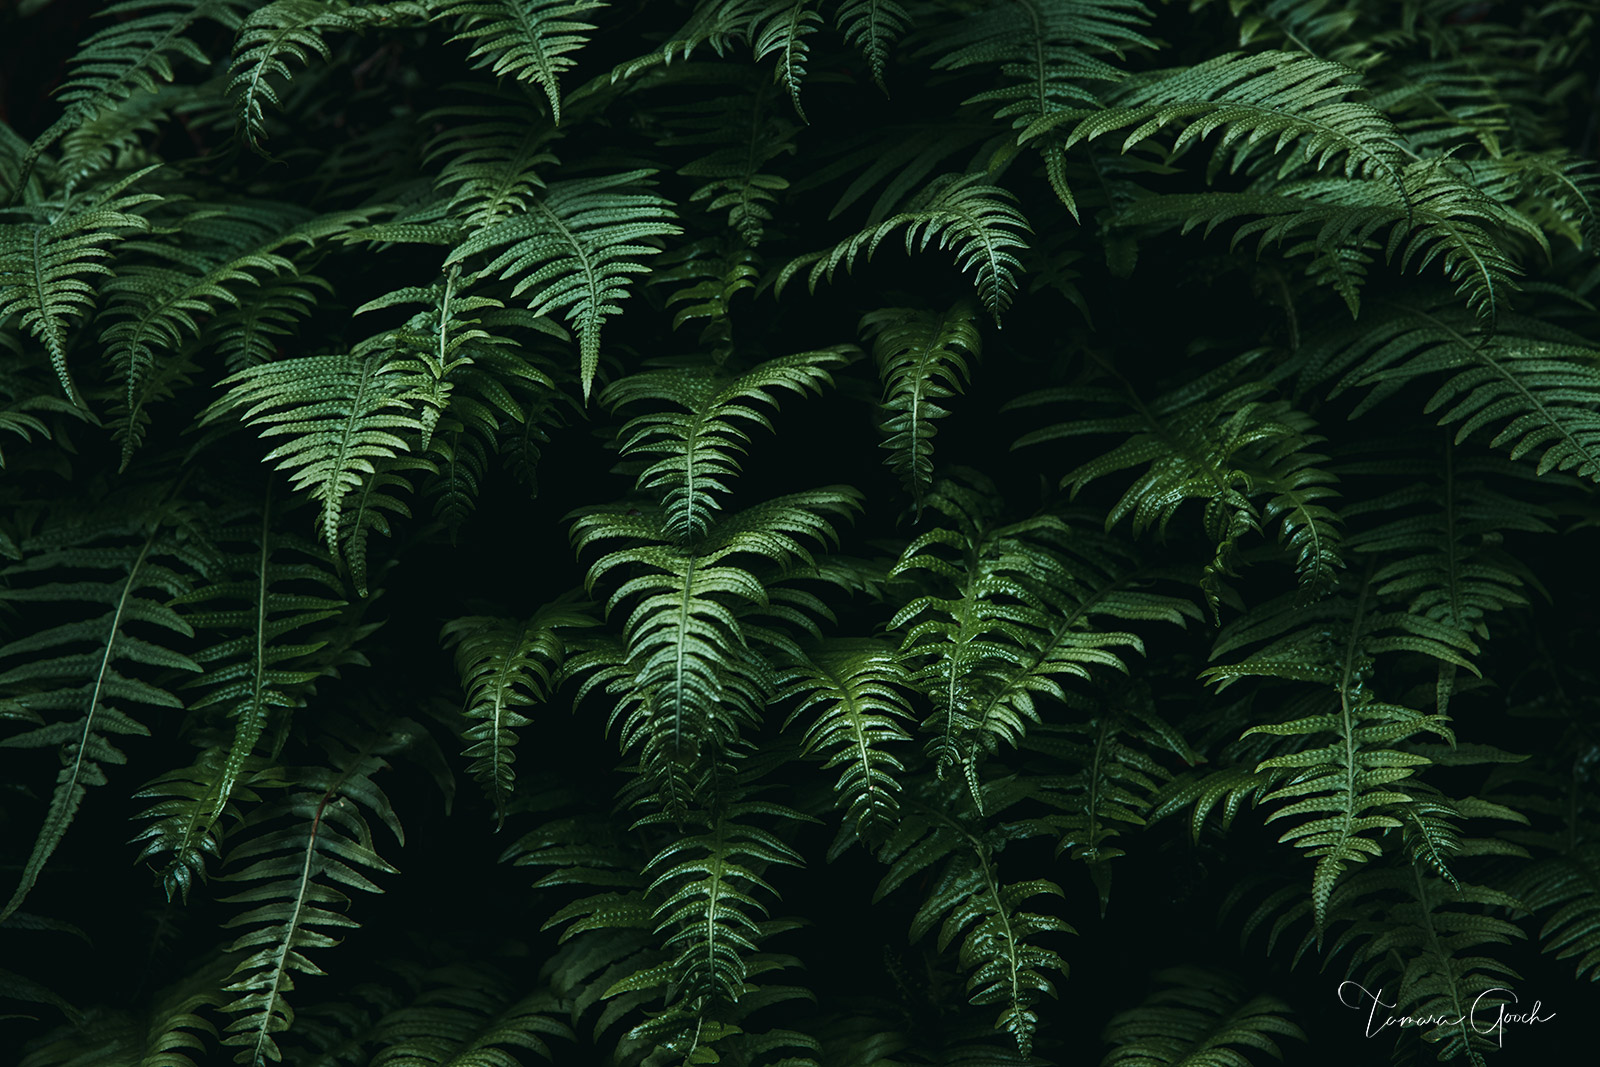 Limited Edition Print of 50 A summertime walk in the Northwest woods reveals large patches of ferns growing on shaded trails...